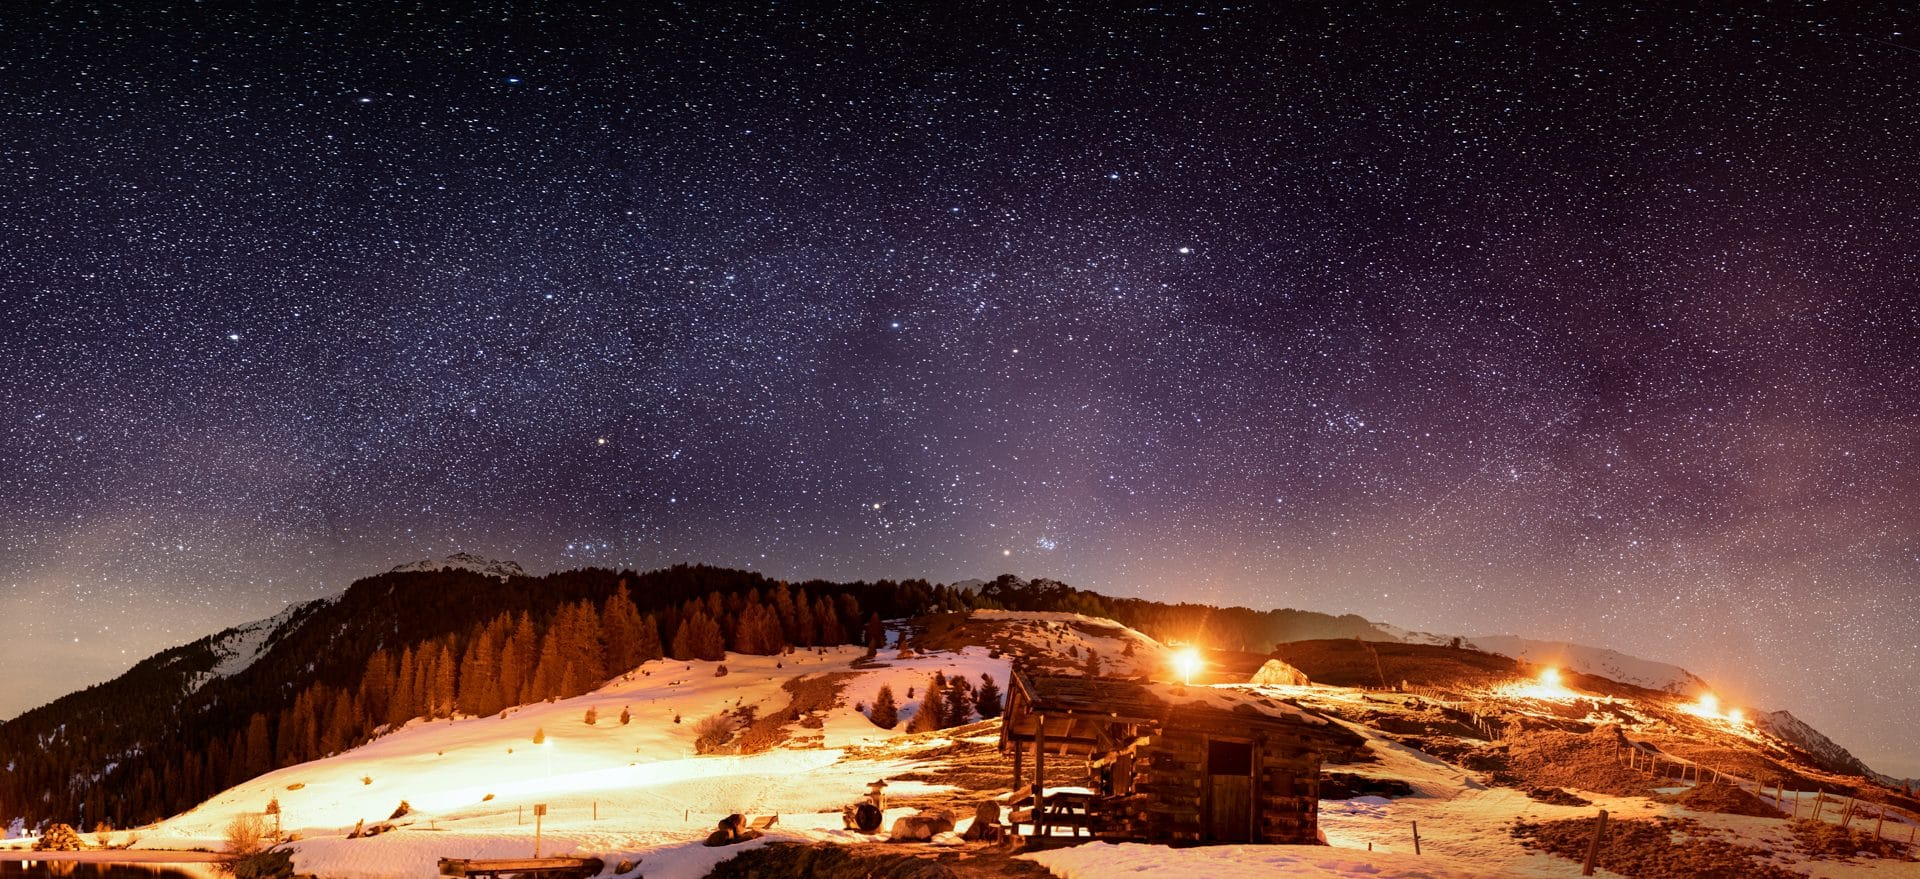 Winther milkyway in Praxmar